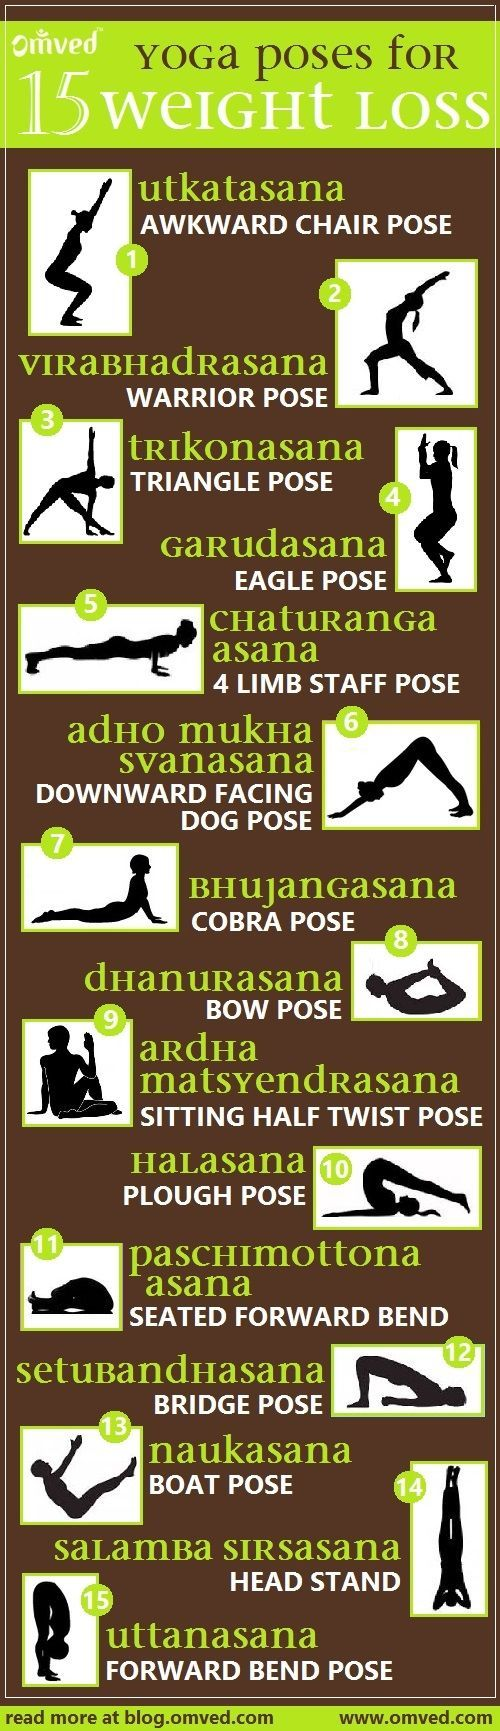 Top 15 yoga poses for WEIGHT LOSS - Although Yoga is not always the popular choice for serious fat burning or weight loss, yet it is an extremely effective tool specially for fighting stubborn fat sto